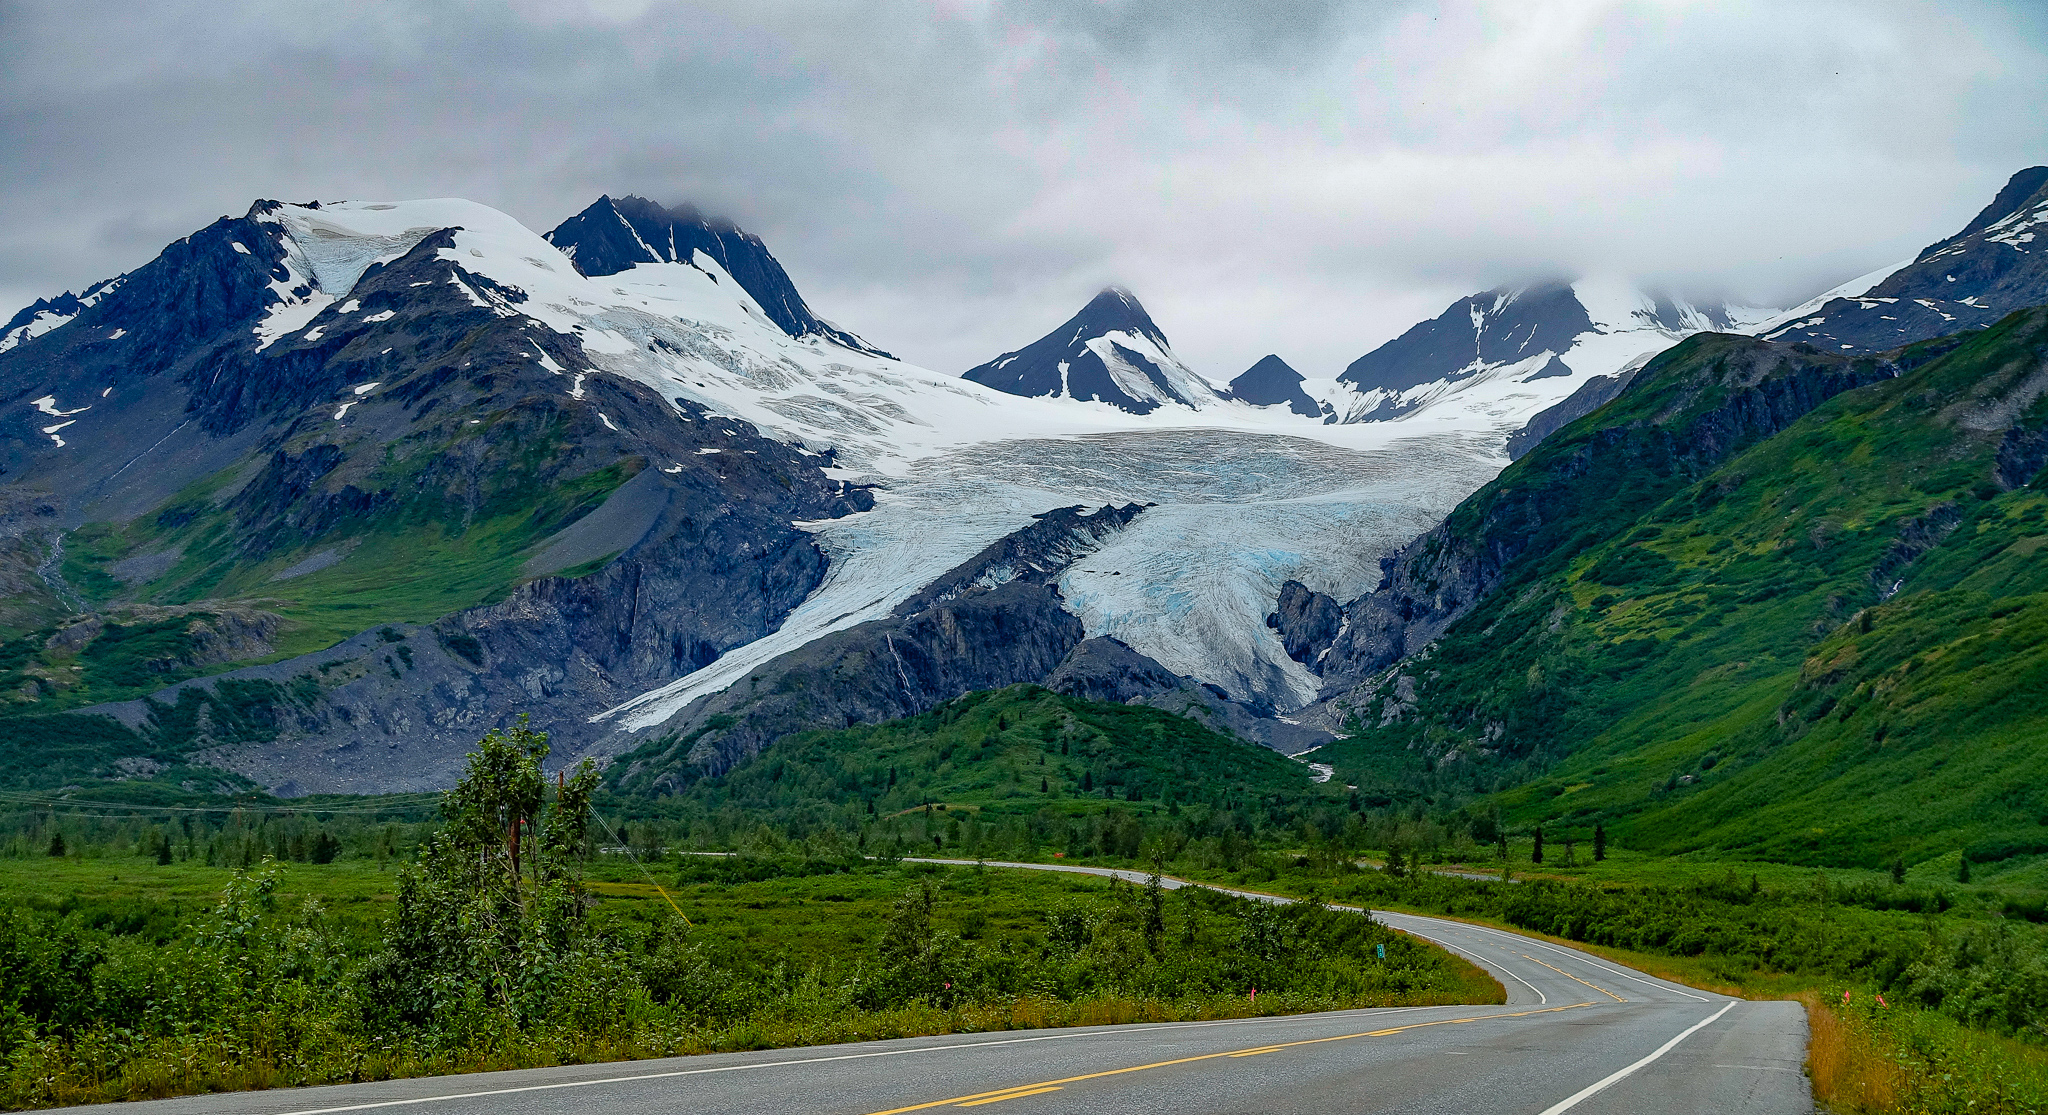 Retreating glacier.